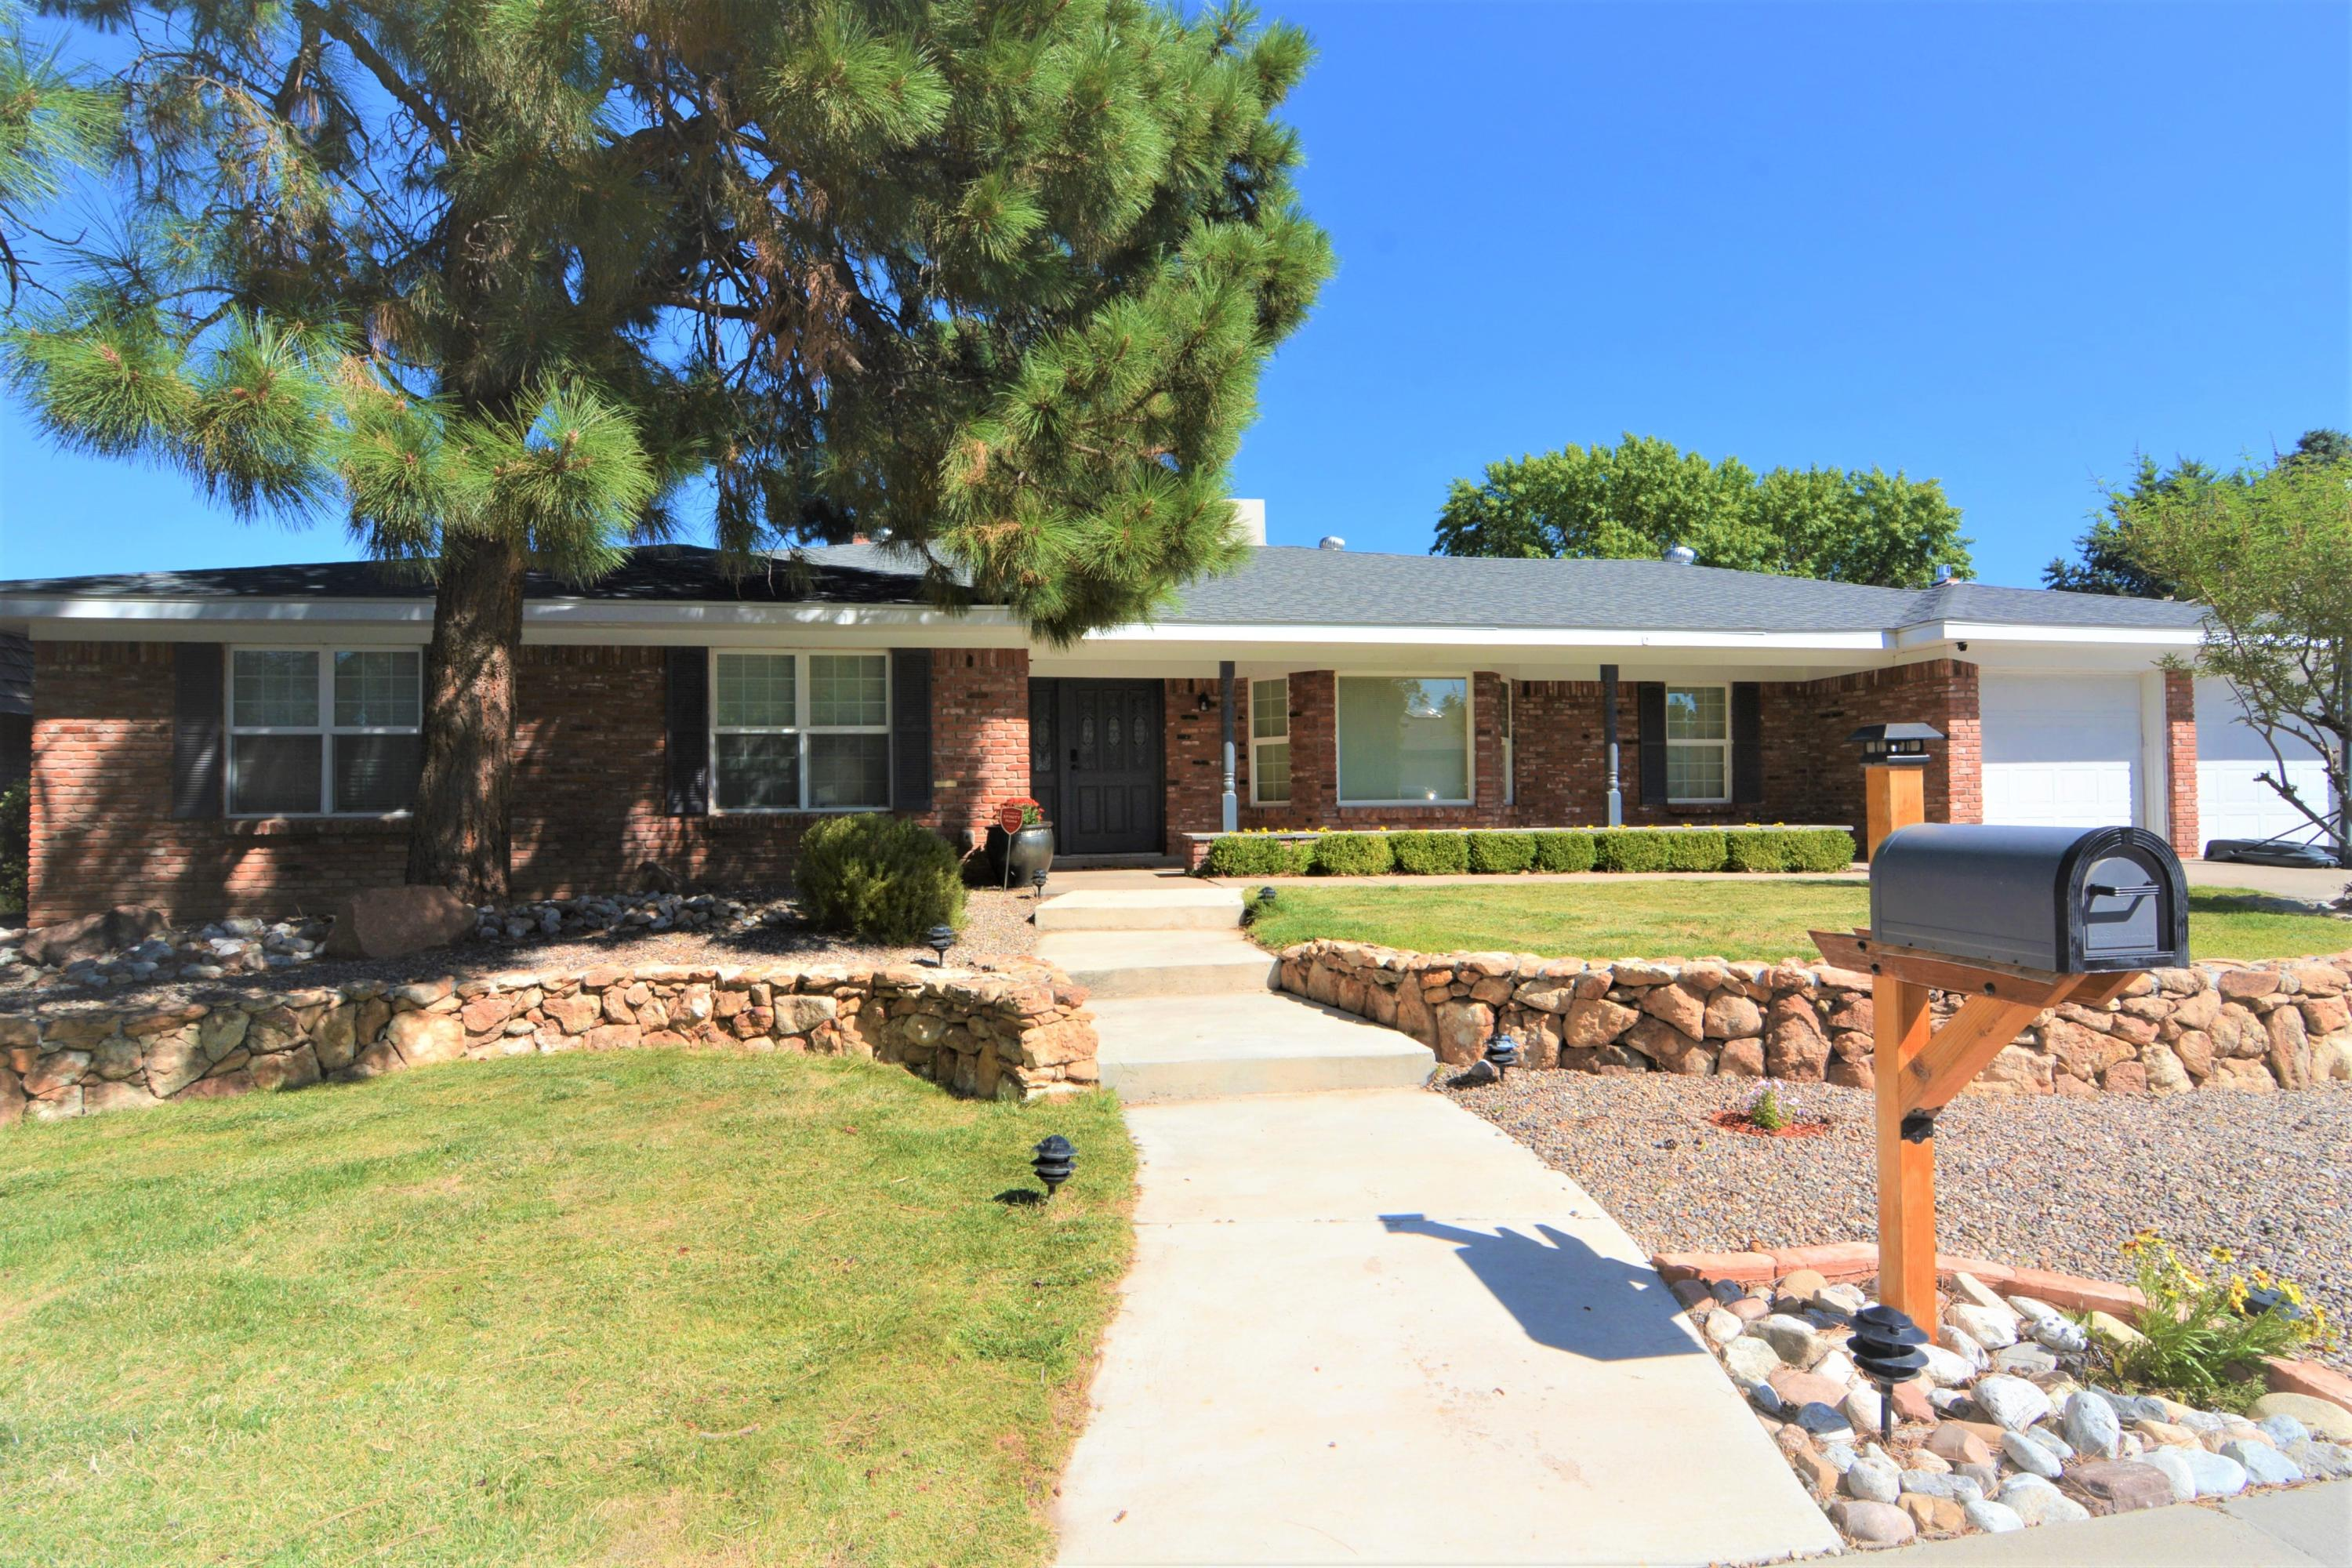 7017 CARRIAGE Road NE Property Photo - Albuquerque, NM real estate listing